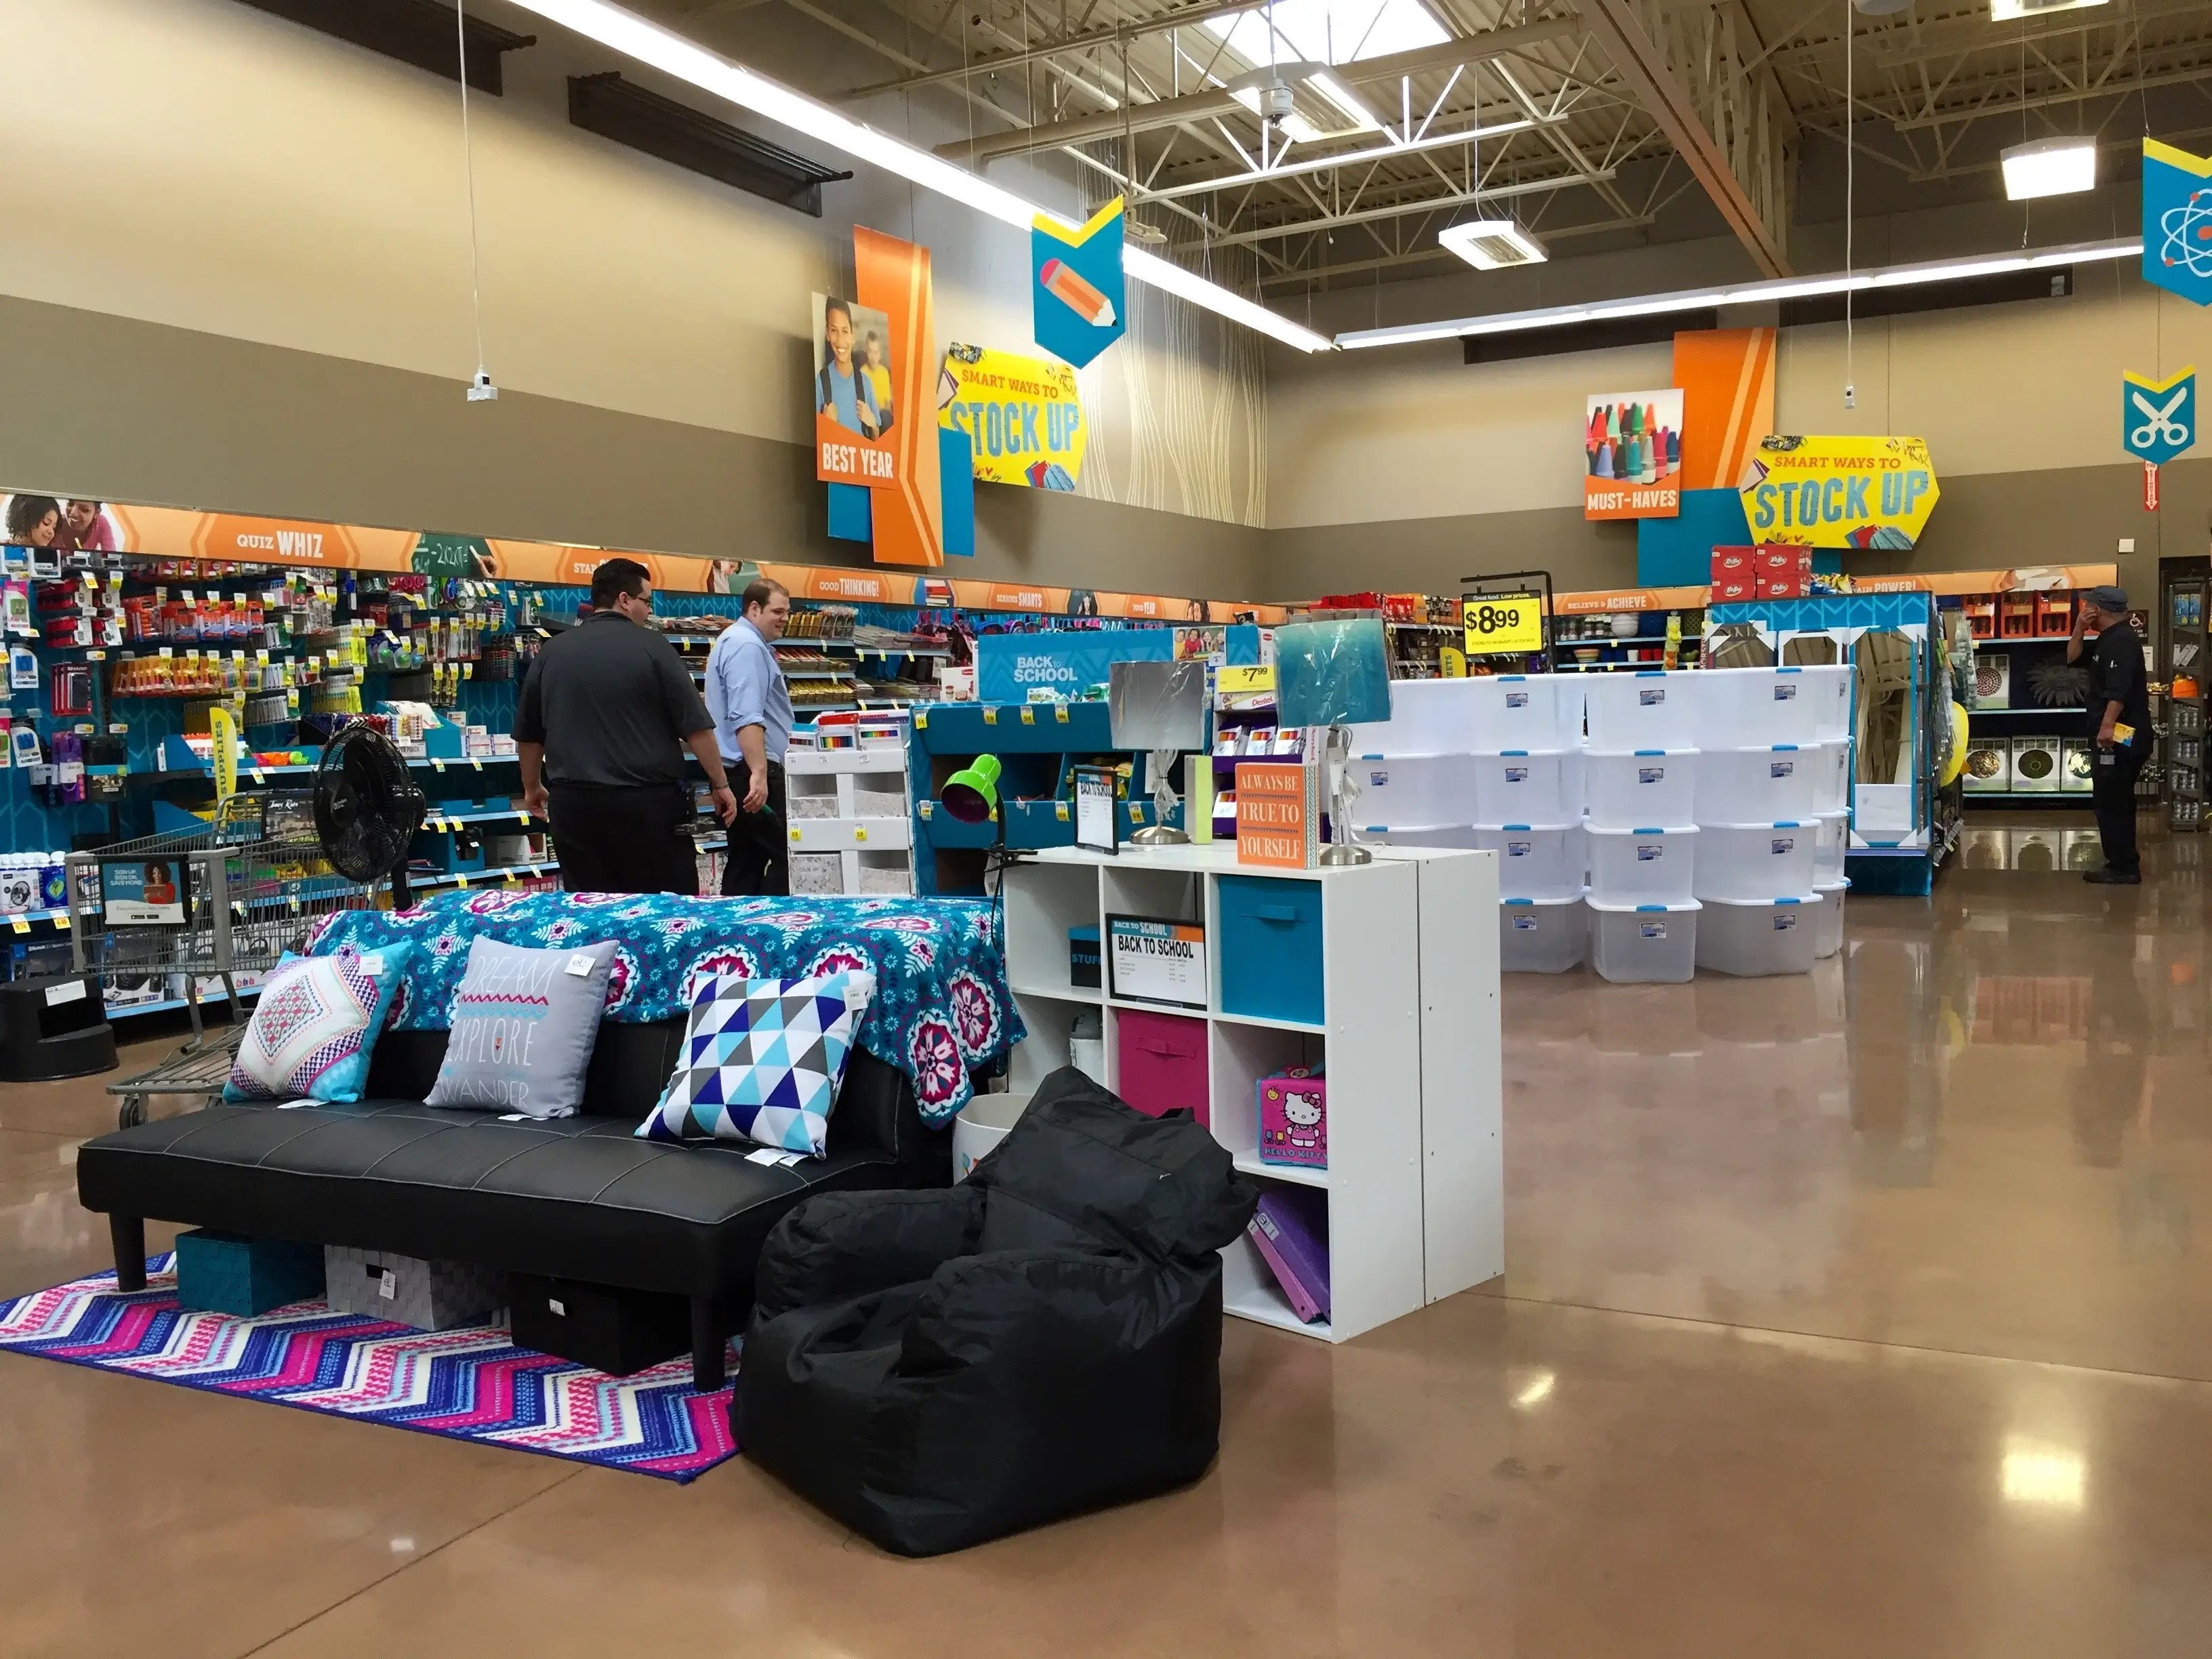 Futons and bean-bag chairs are featured.